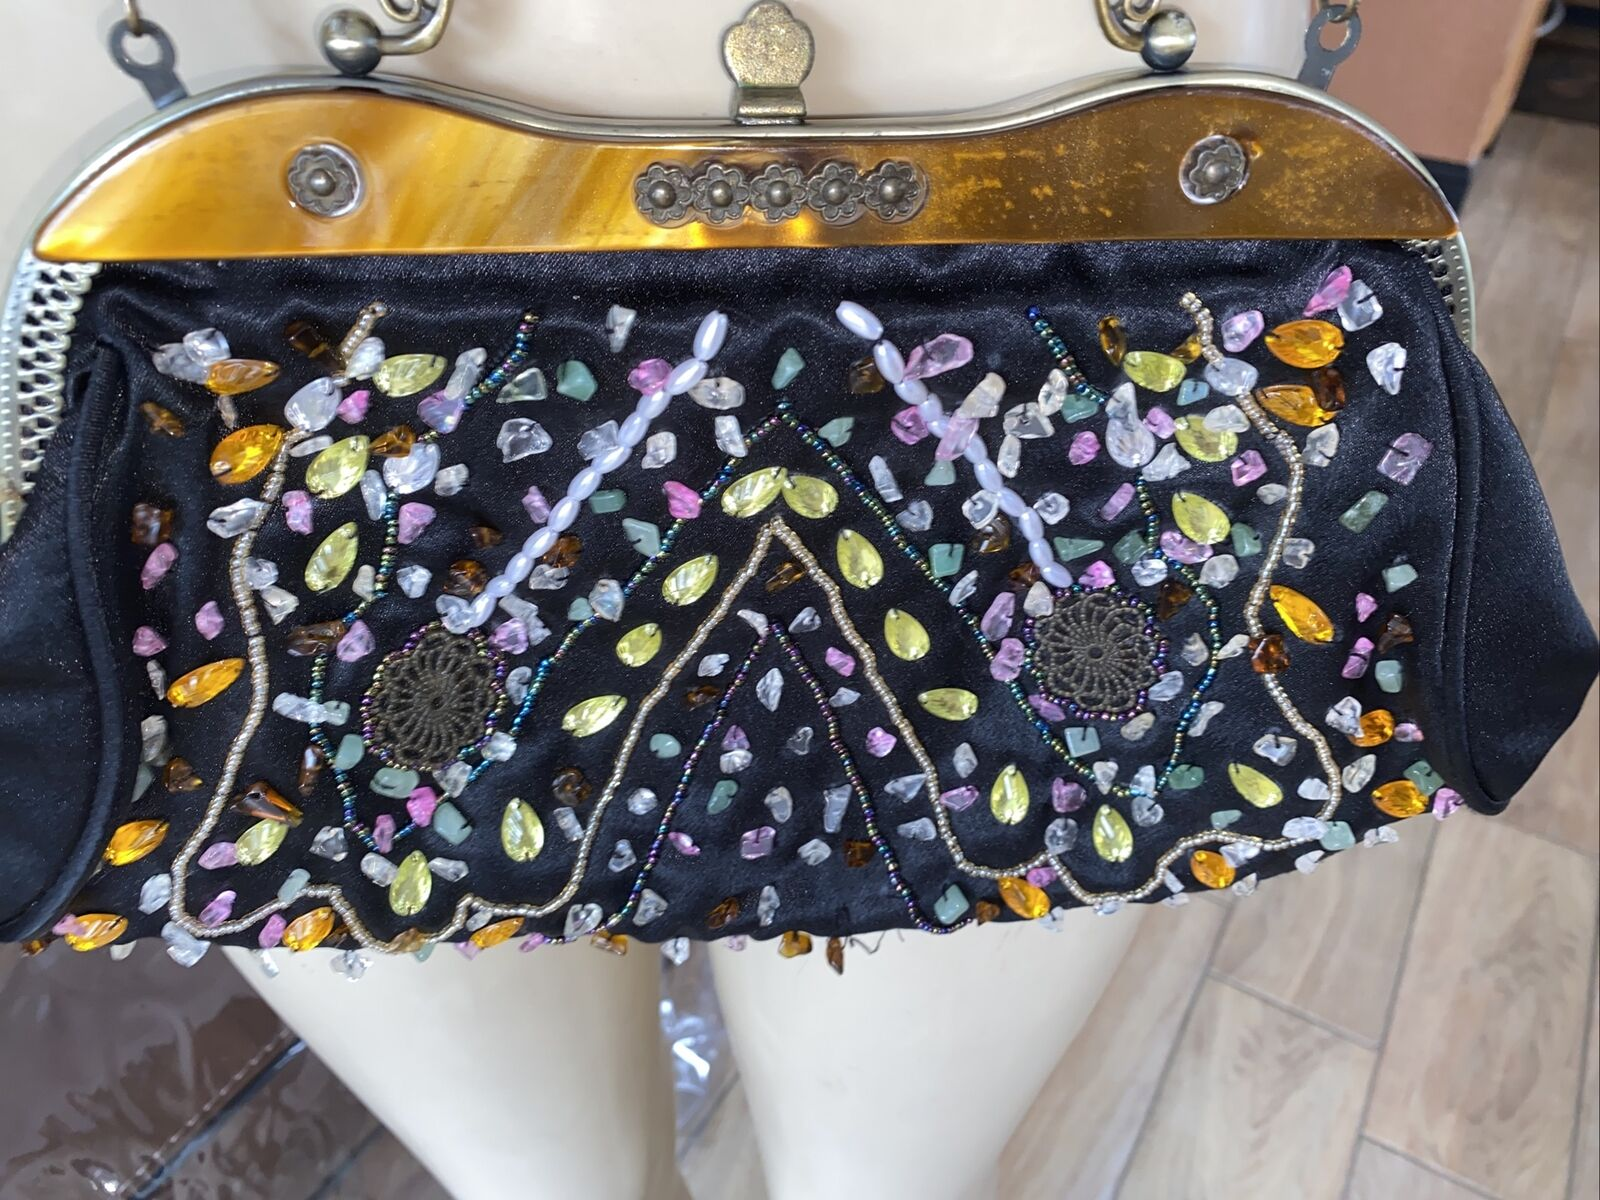 Beautiful VTG STYLE Beaded Purse - Metal Frame, Chain Handle - bbb